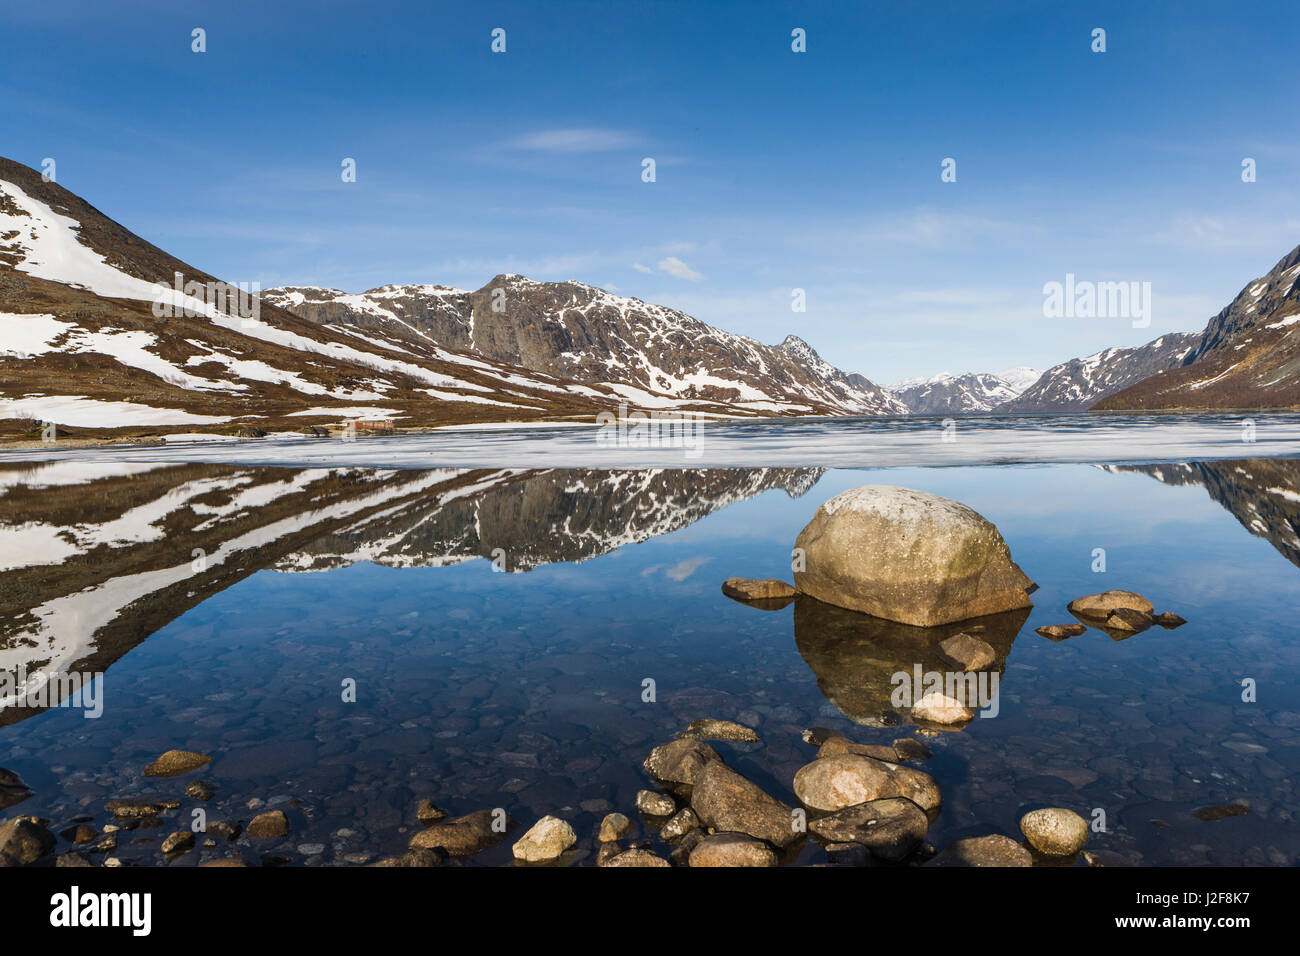 The mountain lake Gjendevatn in the mountains of Jotunheimen on a clear morning in spring - Stock Image